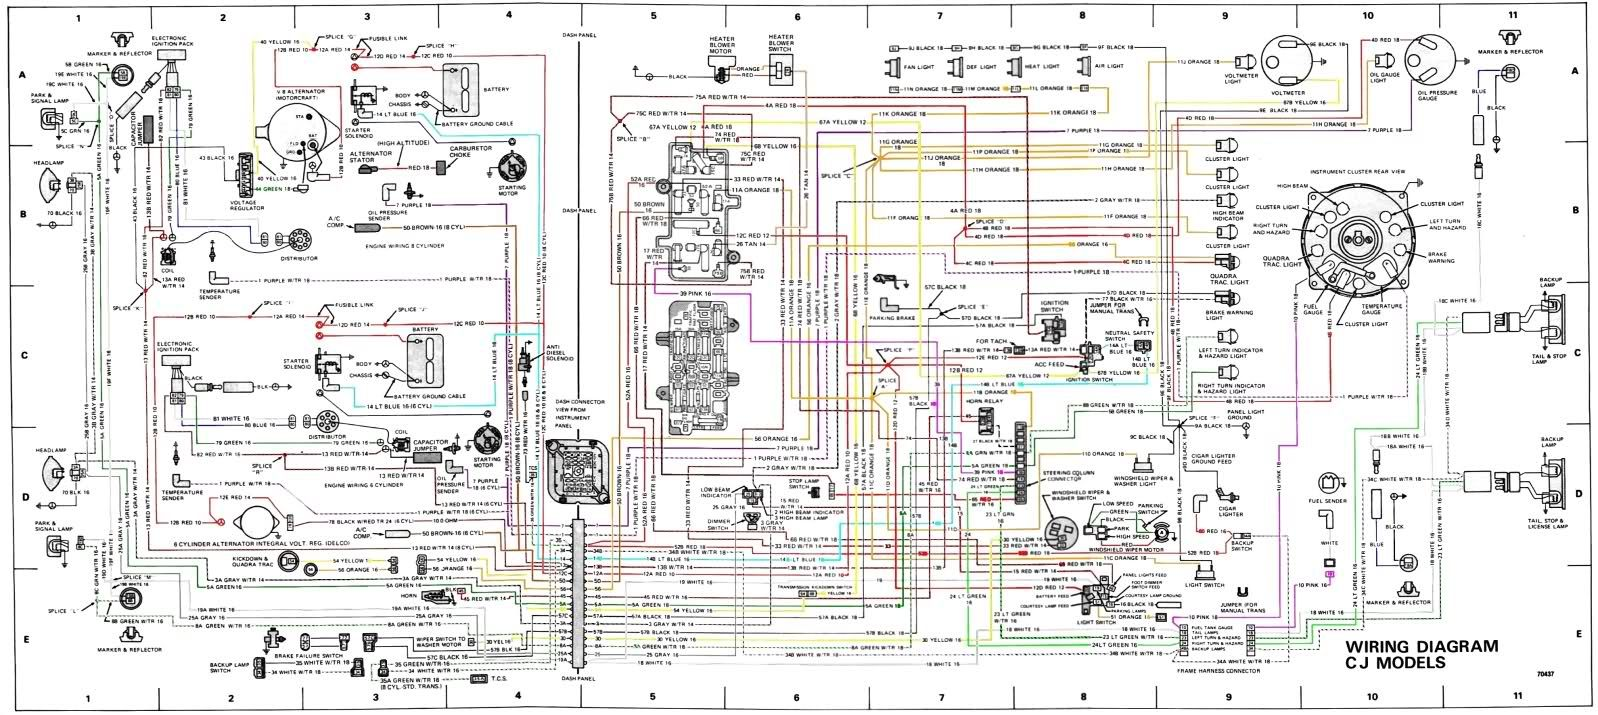 Jeep Cj7 Wiring Diagram - Wiring Diagram Server thick-speed -  thick-speed.ristoranteitredenari.it | 1980 Jeep Wiring Diagram |  | Ristorante I Tre Denari Manerbio